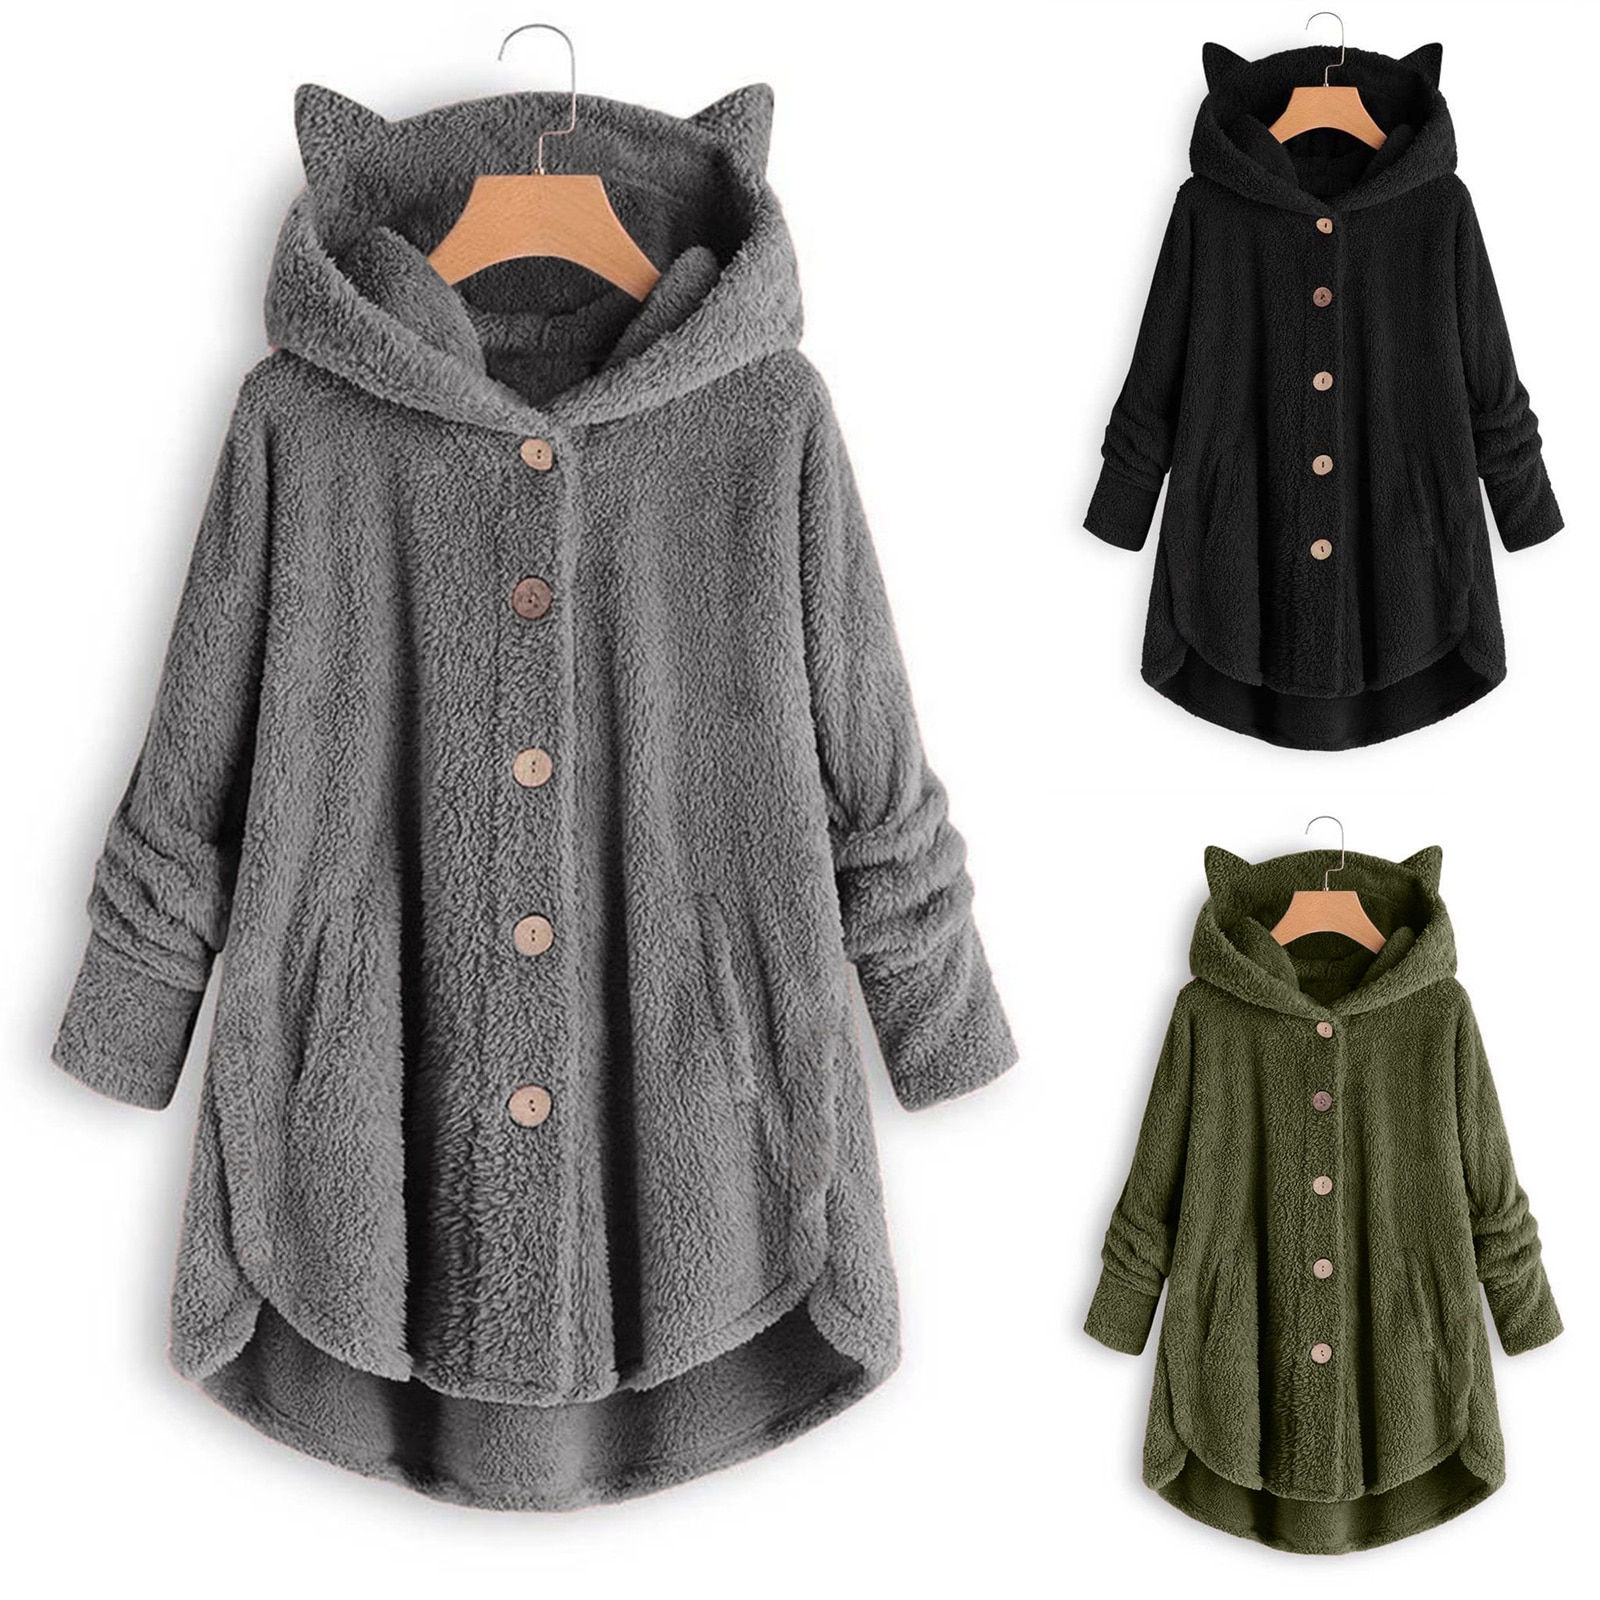 Autumn and Winter New Fashion Women s Button Plush Top Irregular Brand Solid Color Coat